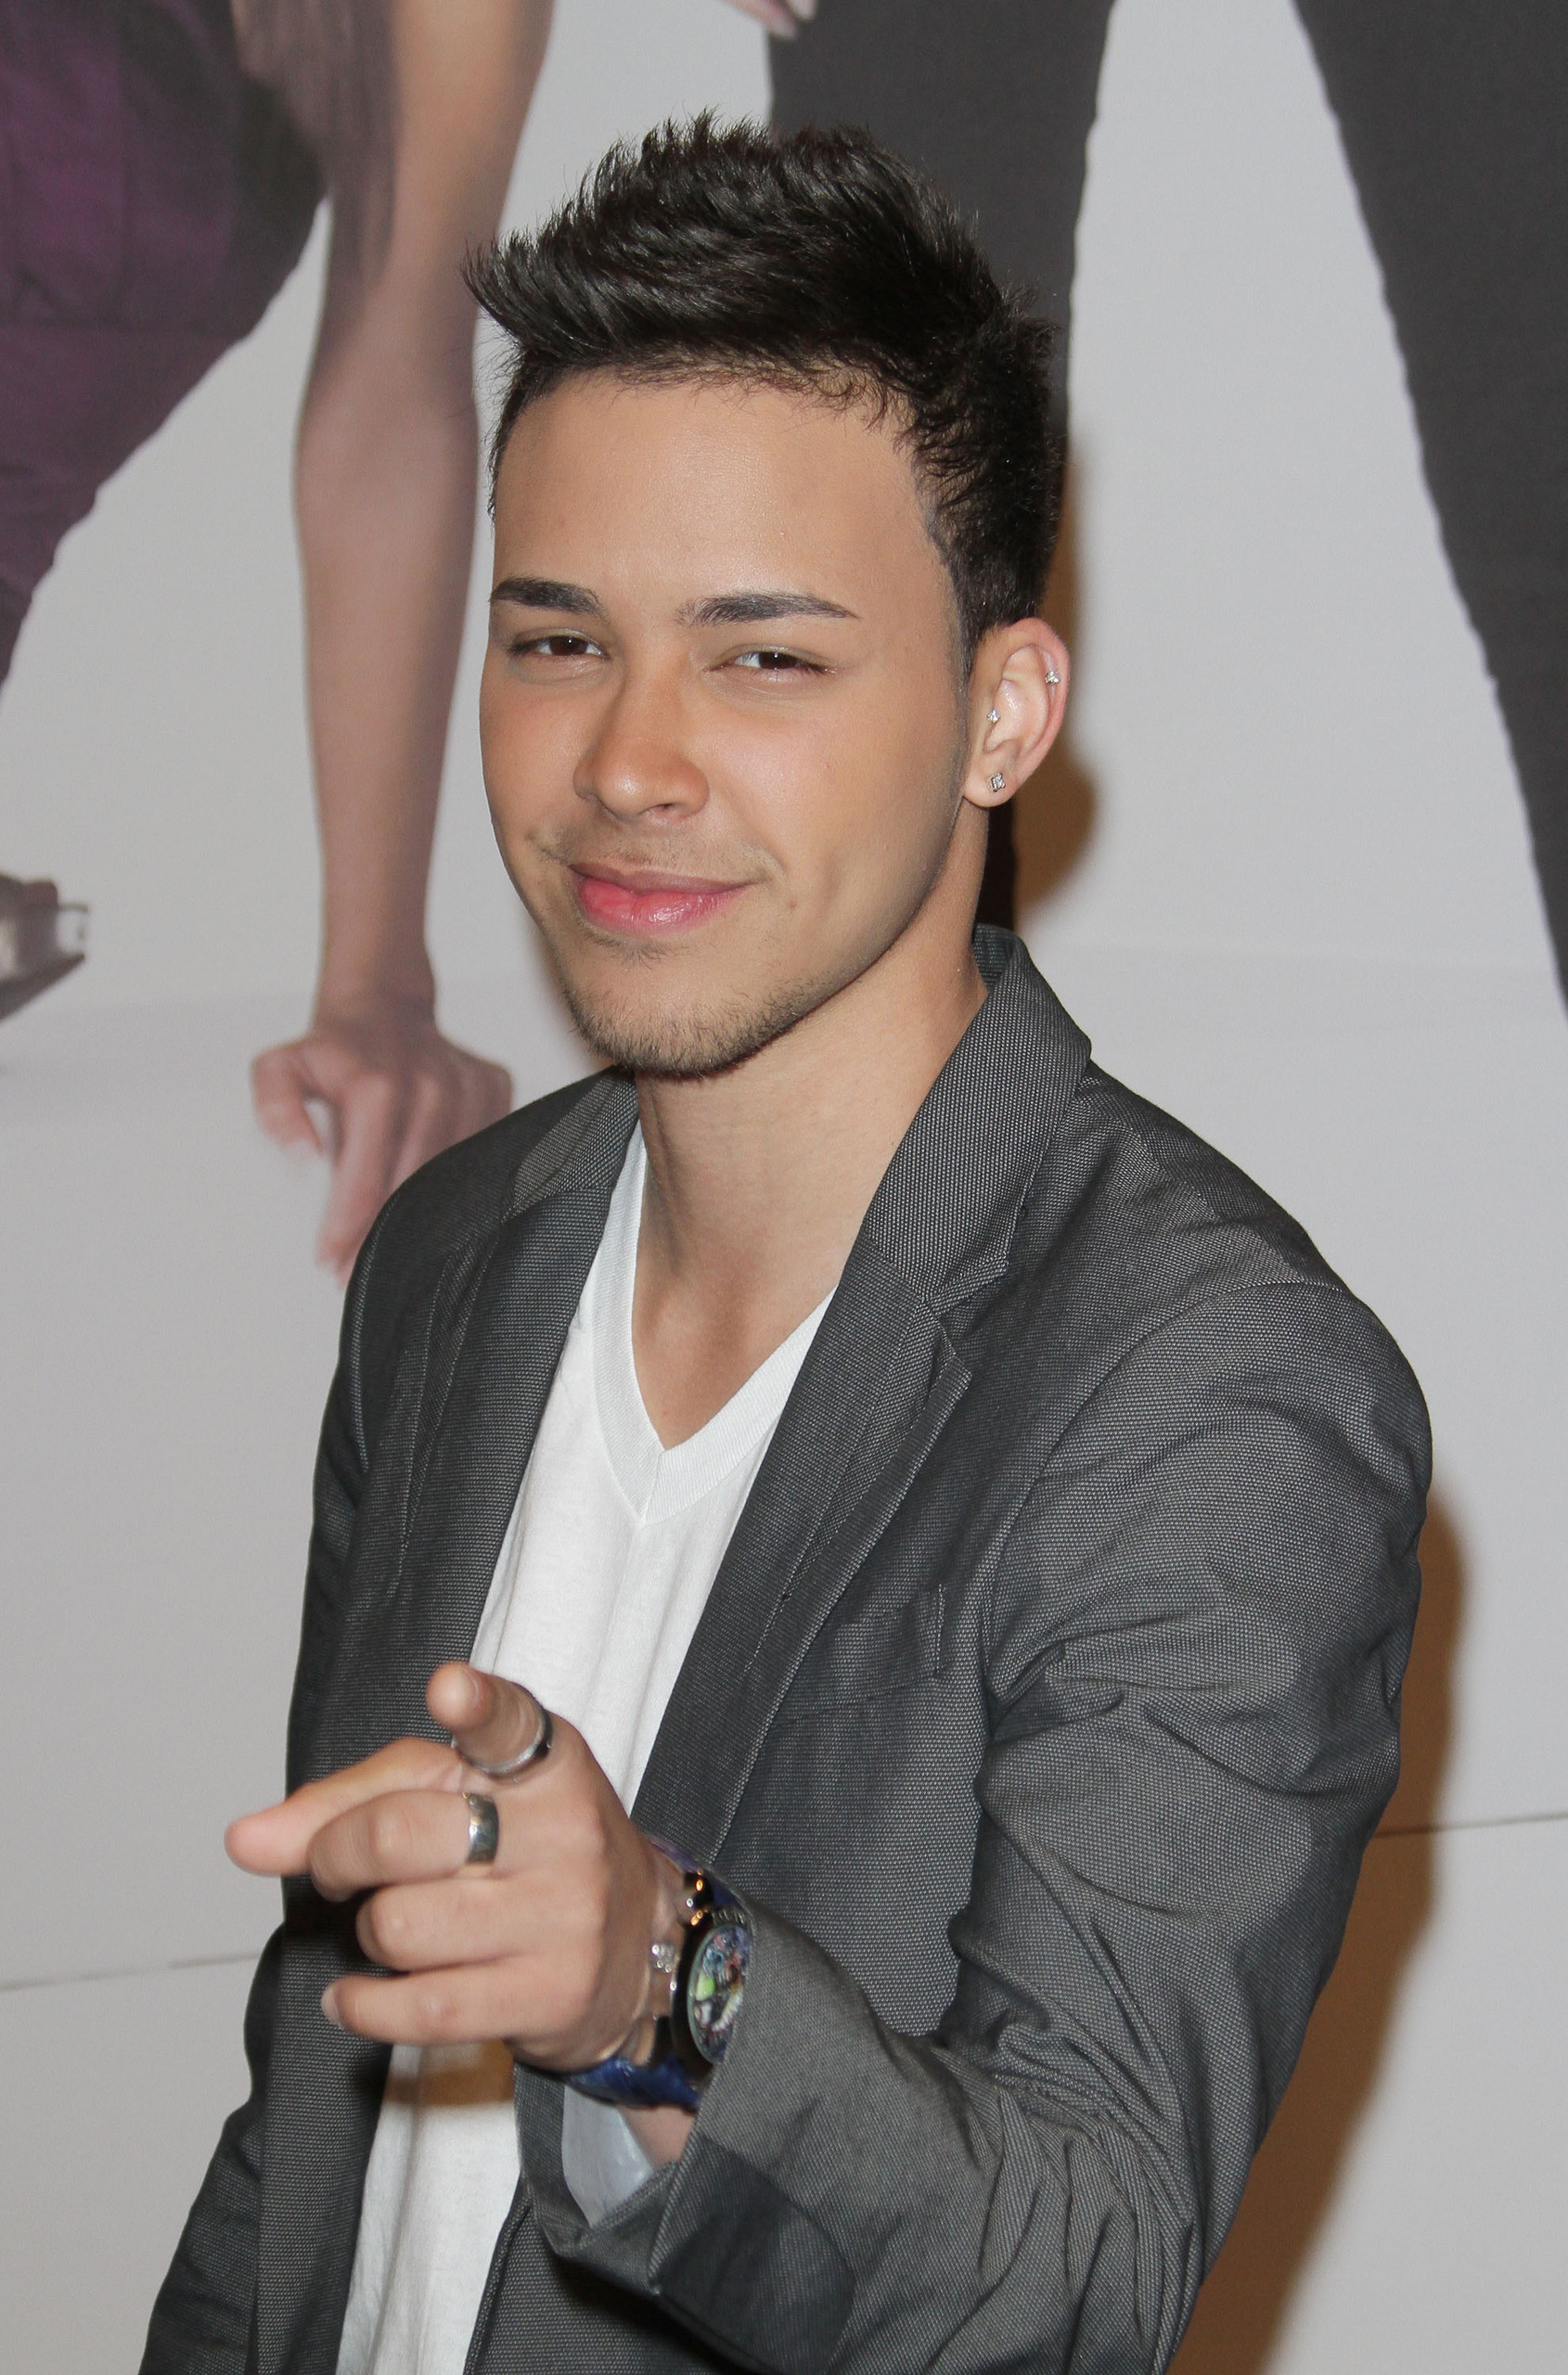 Prince Royce Images Prince Royce 3 HD Wallpaper And Background